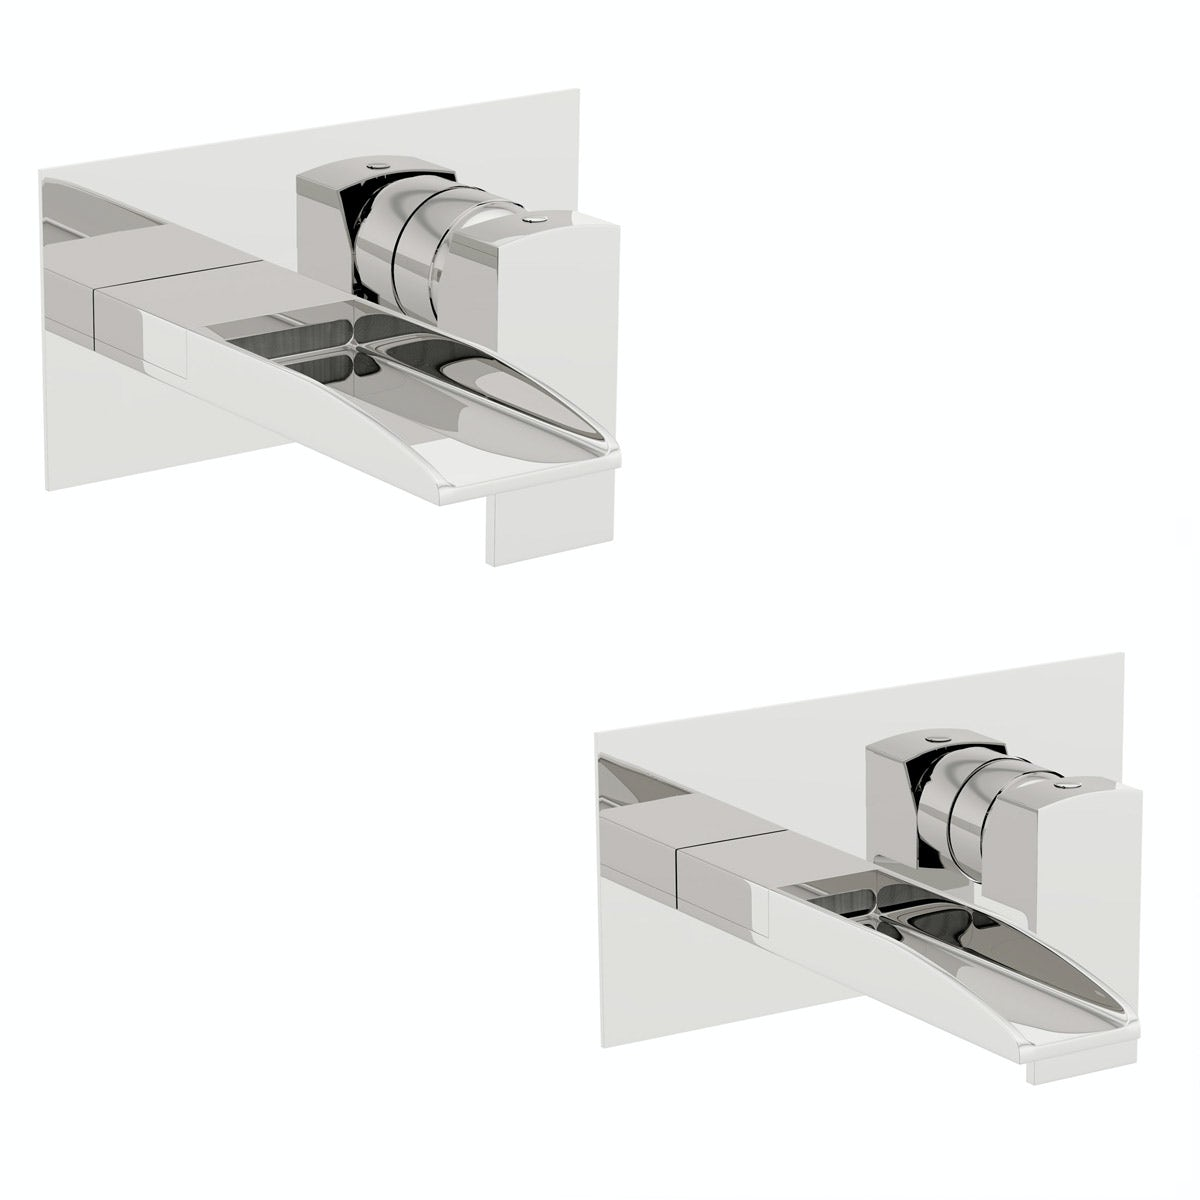 Mode Cooper wall mounted basin and bath mixer tap pack